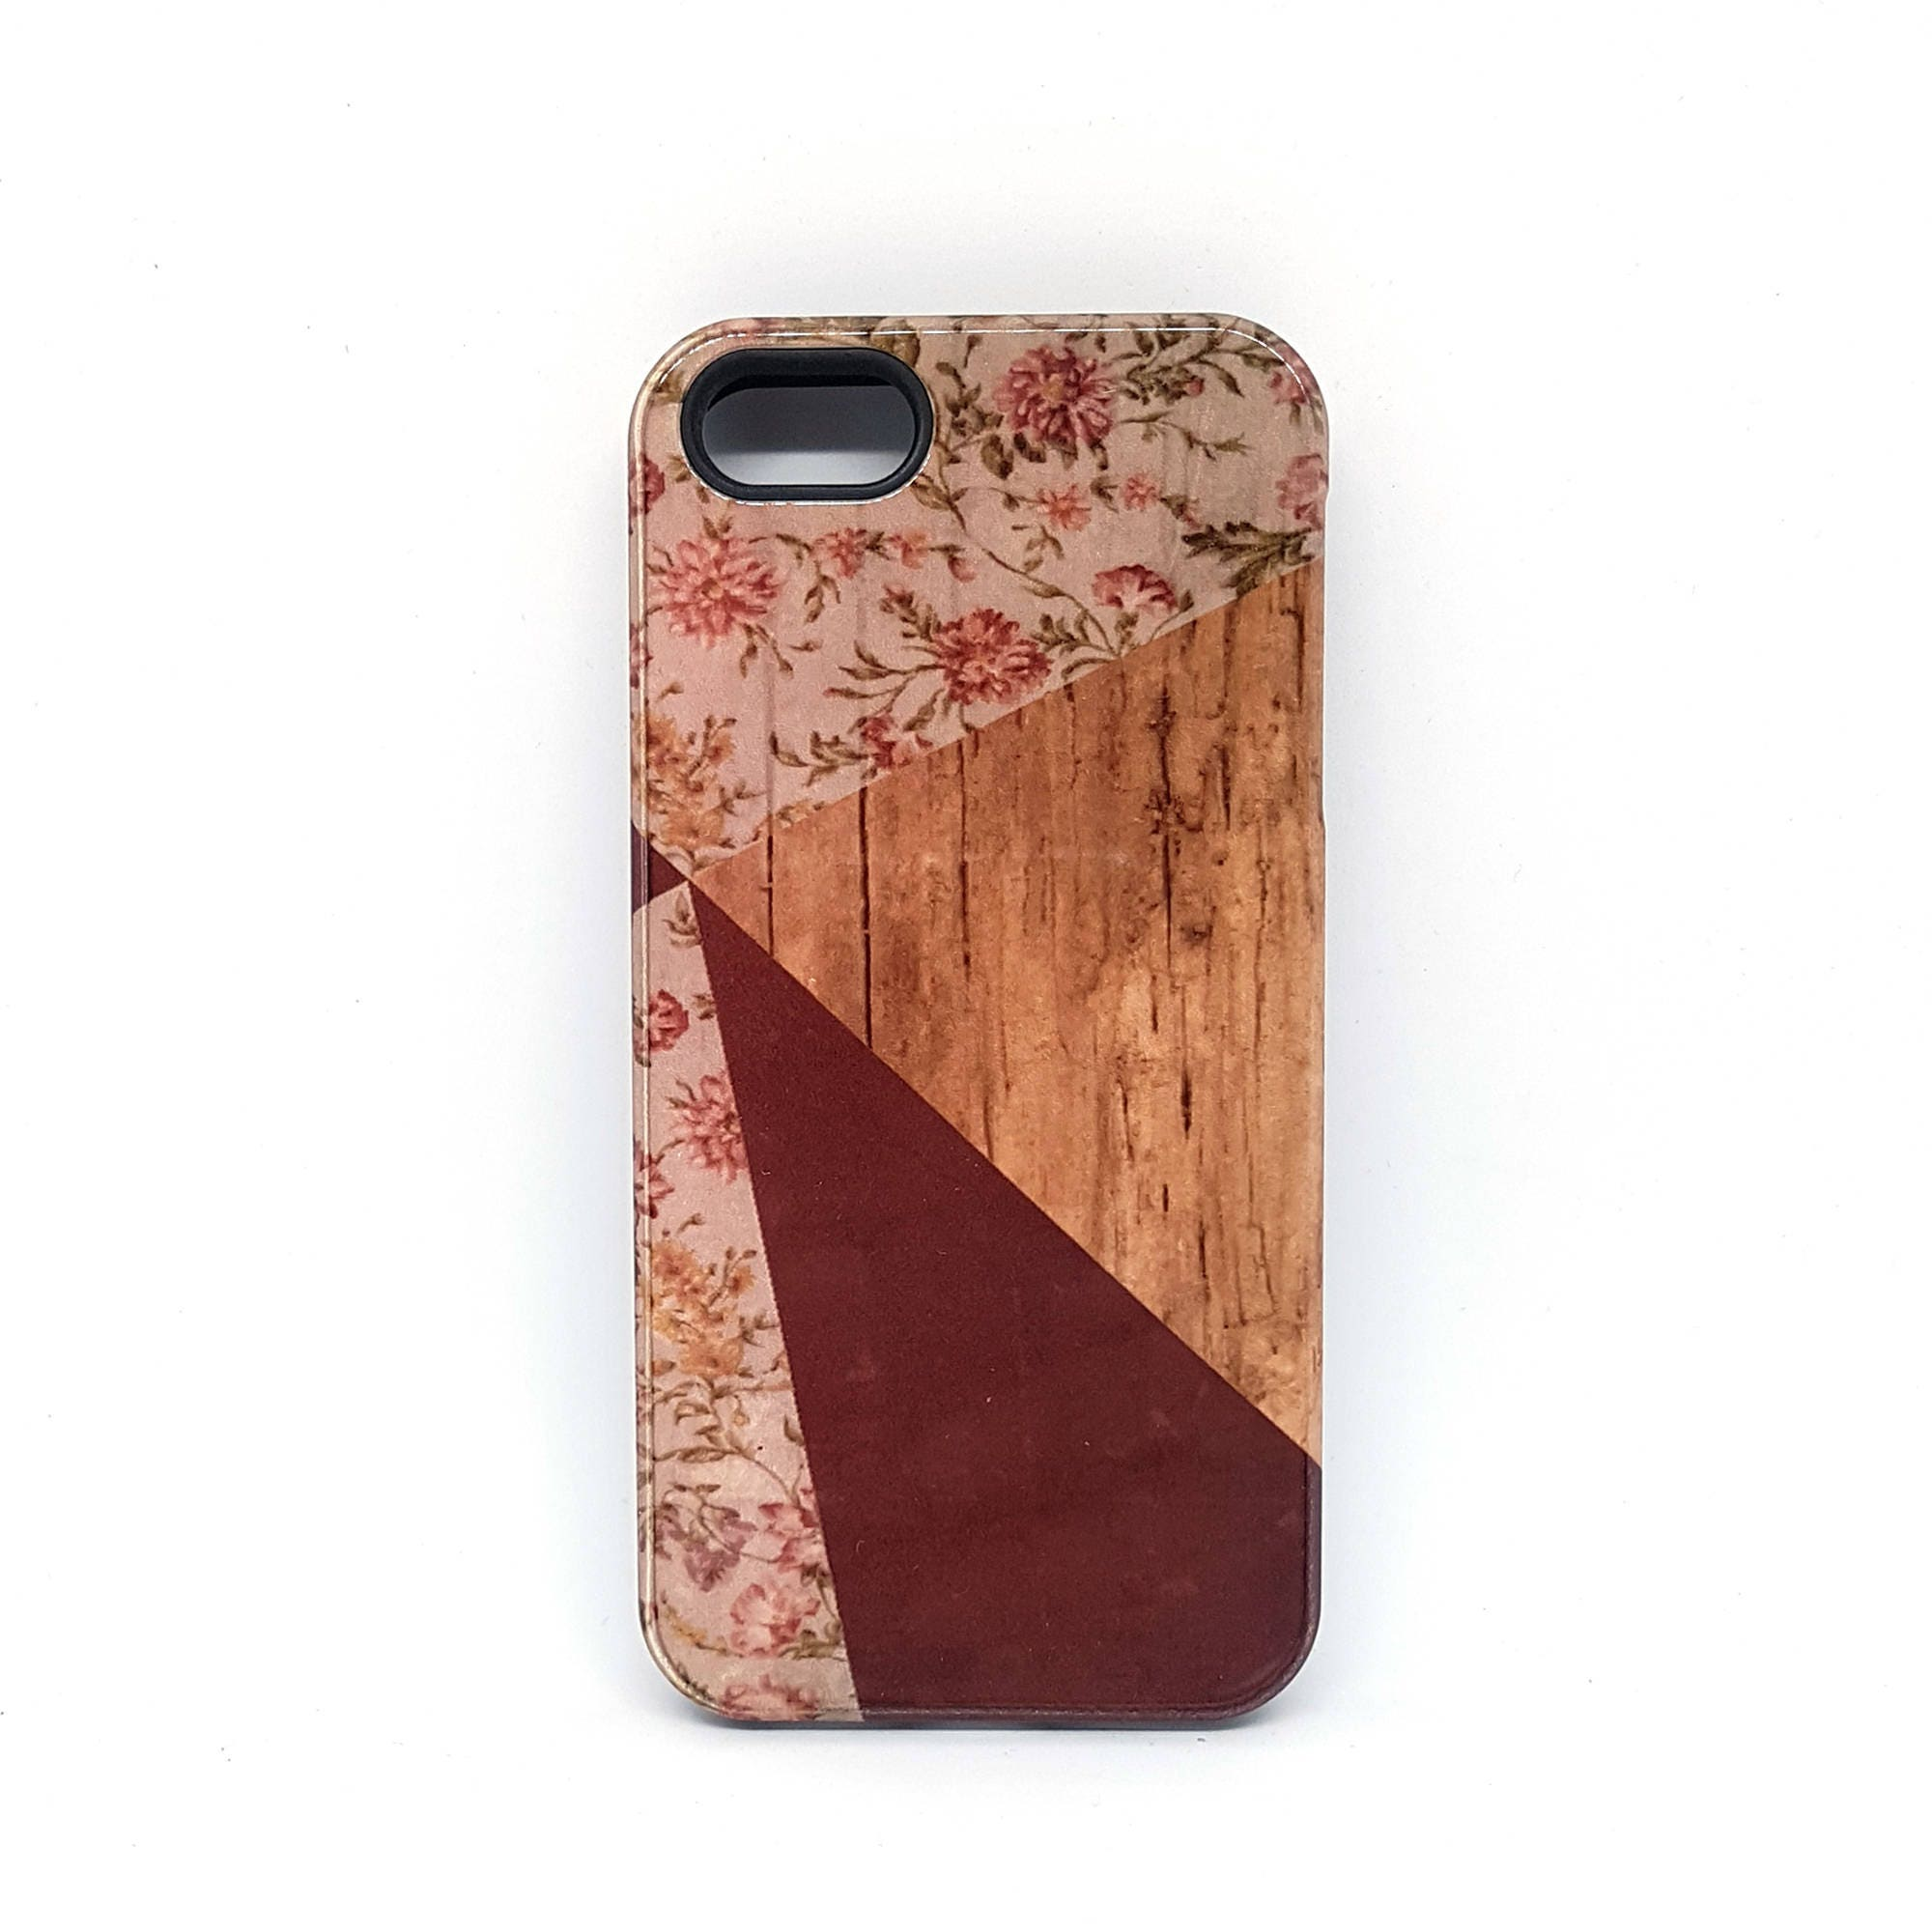 promo code ca904 65d67 On Sale - iPhone 5 case, iPhone 5s case, iPhone 5 case tough, iPhone ...